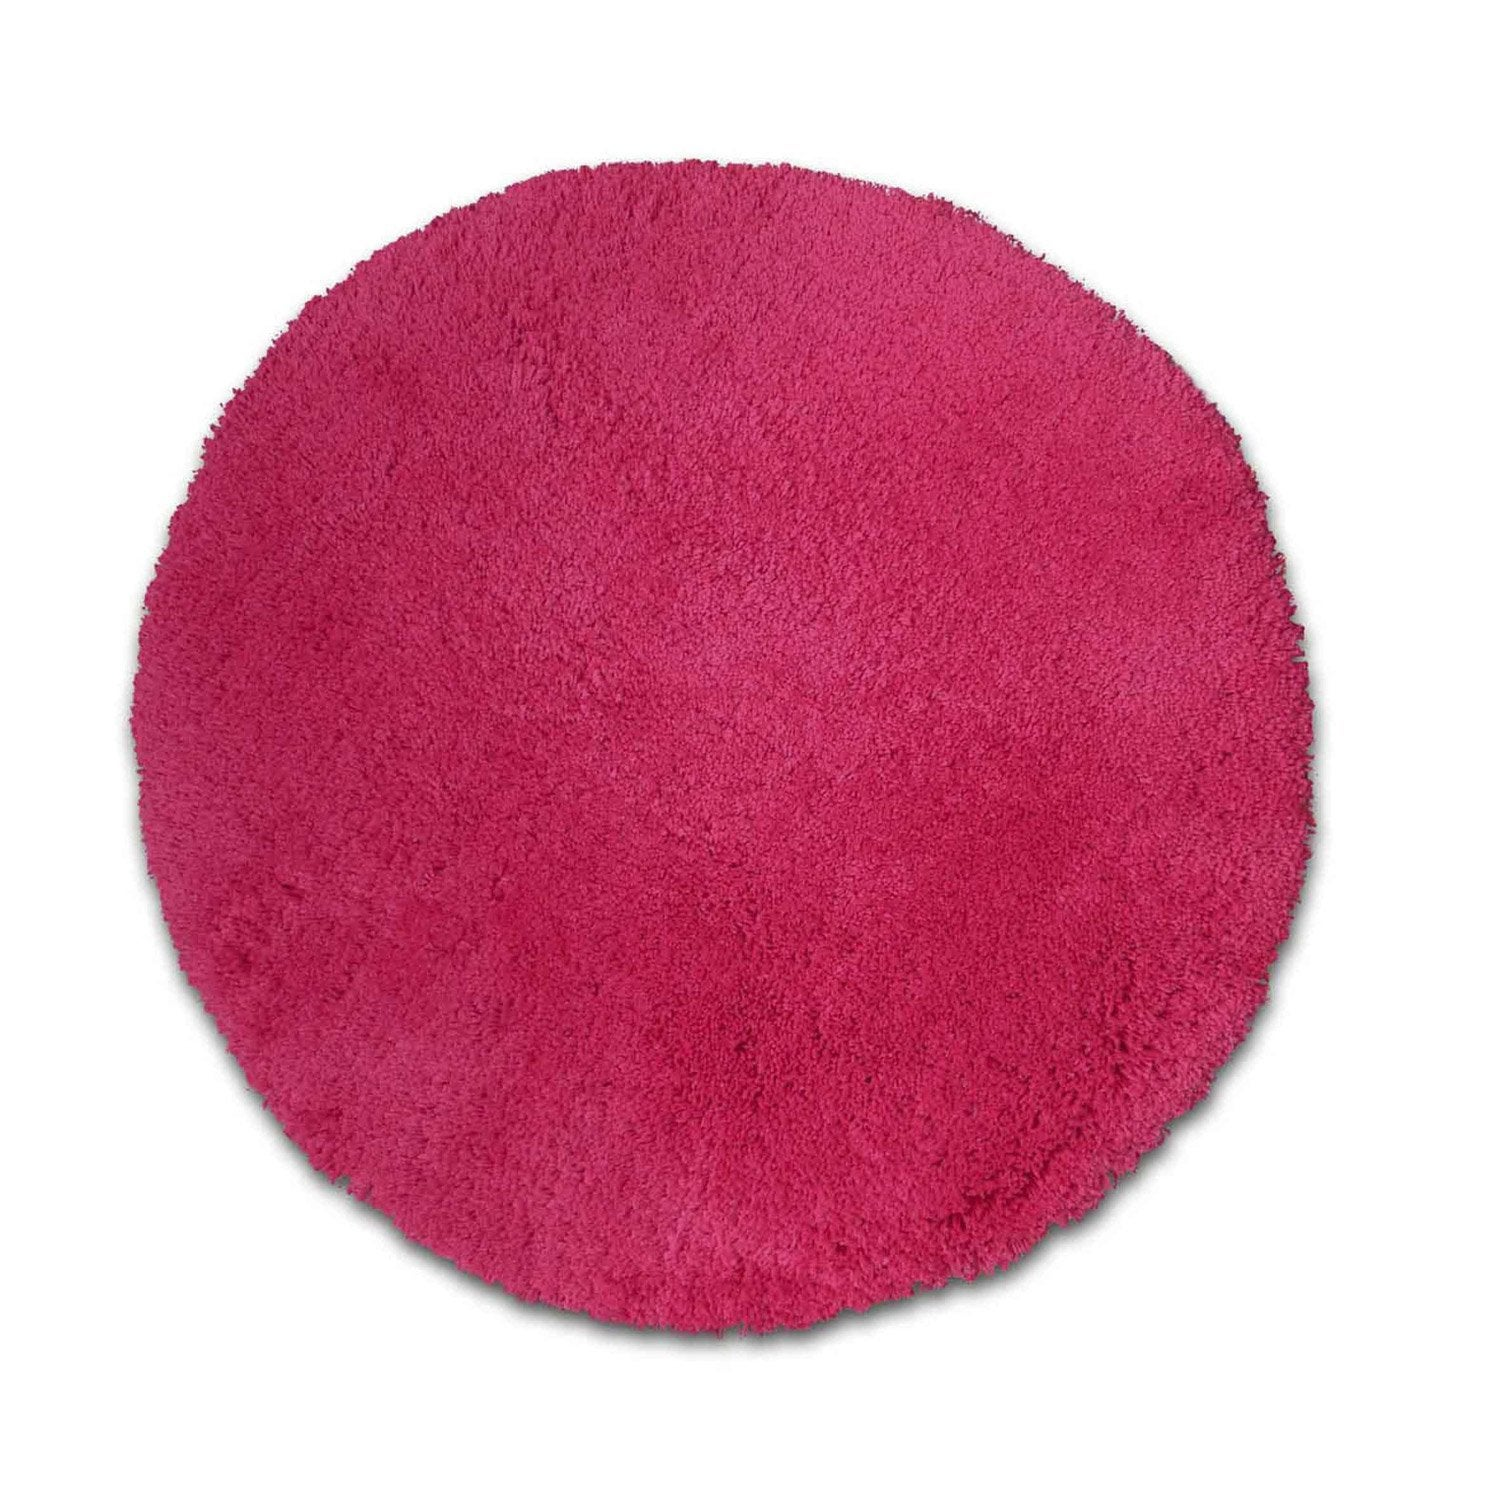 Tapis rose shaggy agathe mm leroy merlin - Tapis shaggy rose clair ...